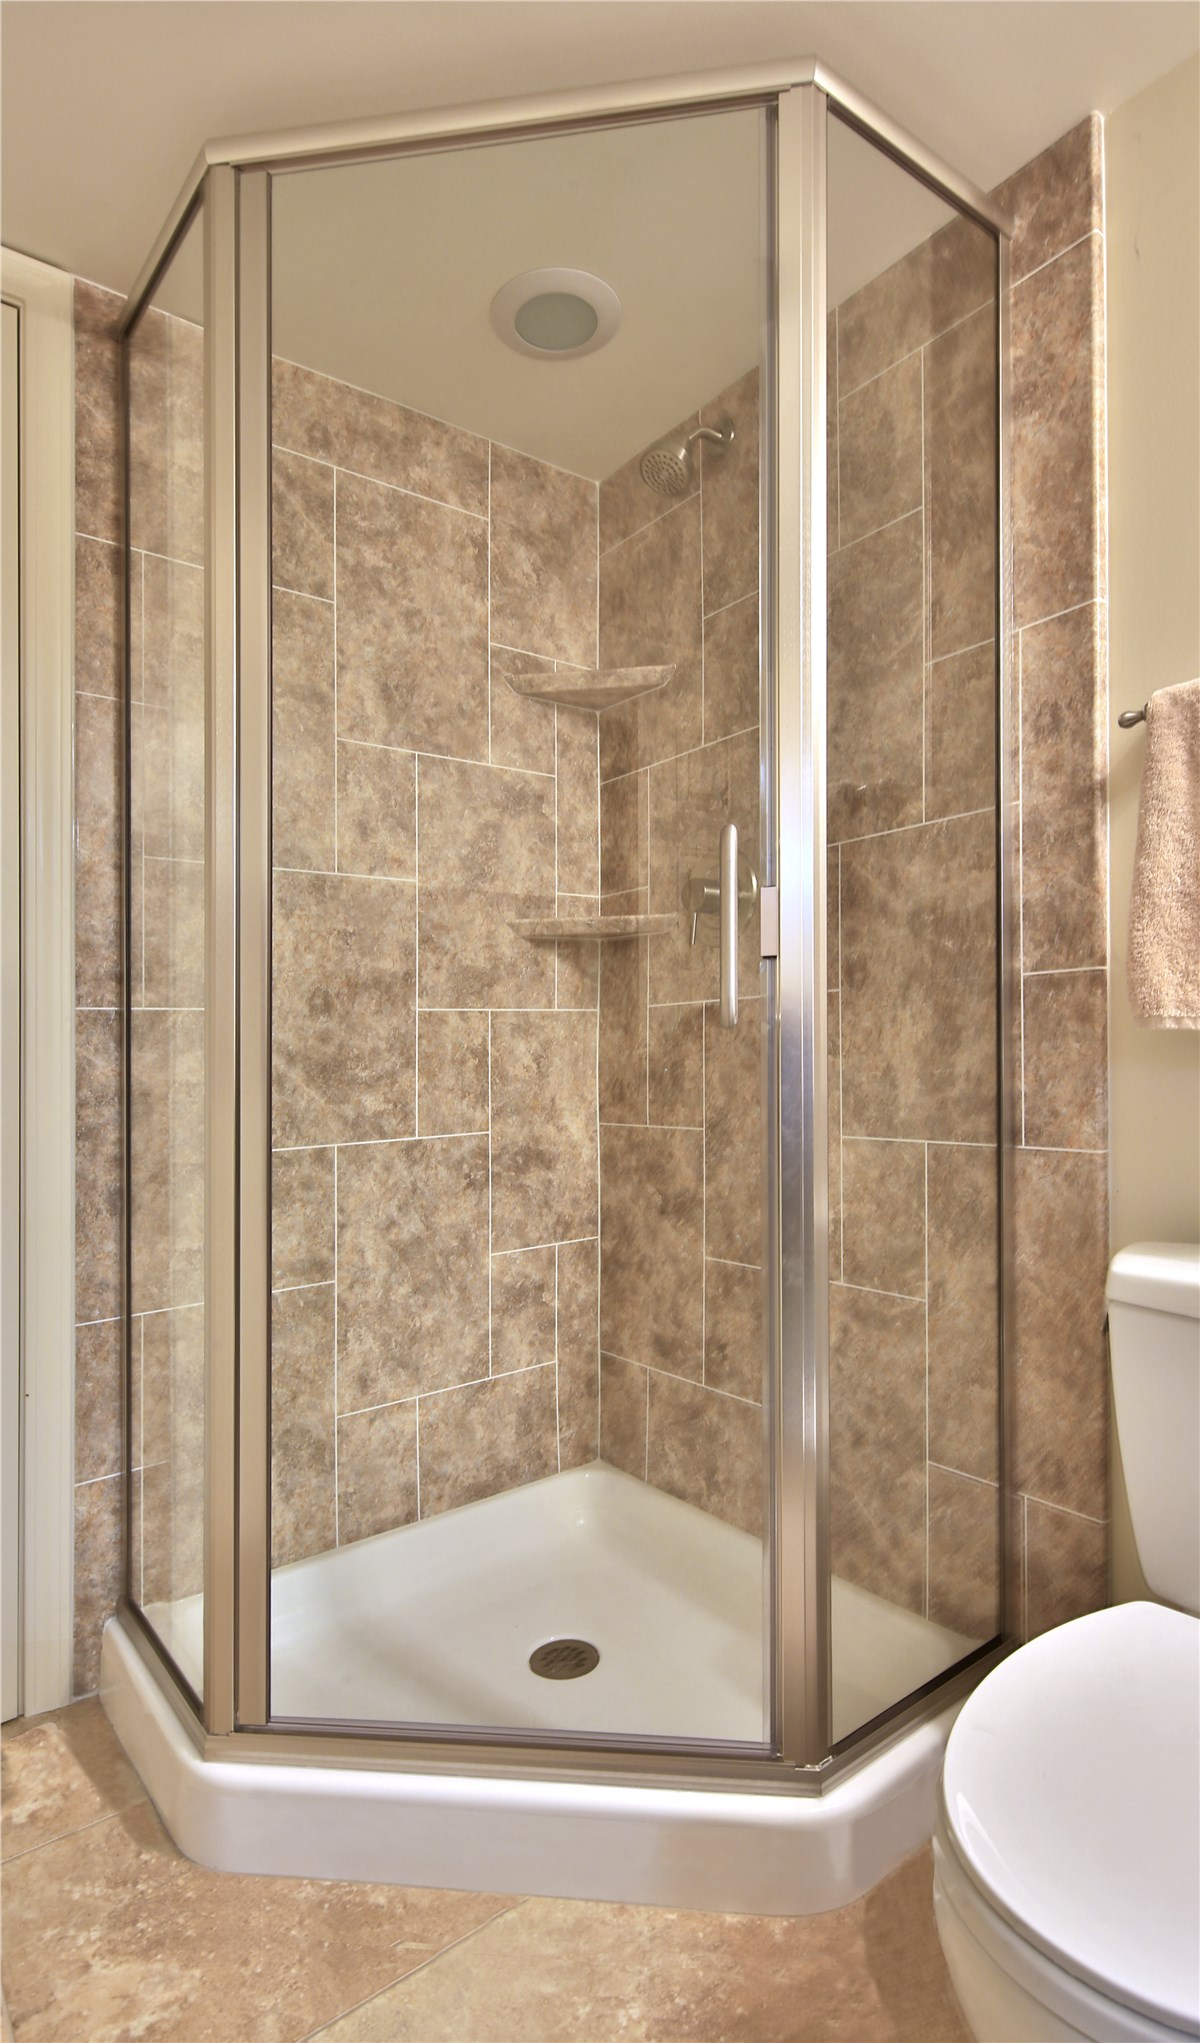 Bathroom Shower Remodeling One Day Remodel  One Day Affordable Bathroom Remodel  Luxury Bath